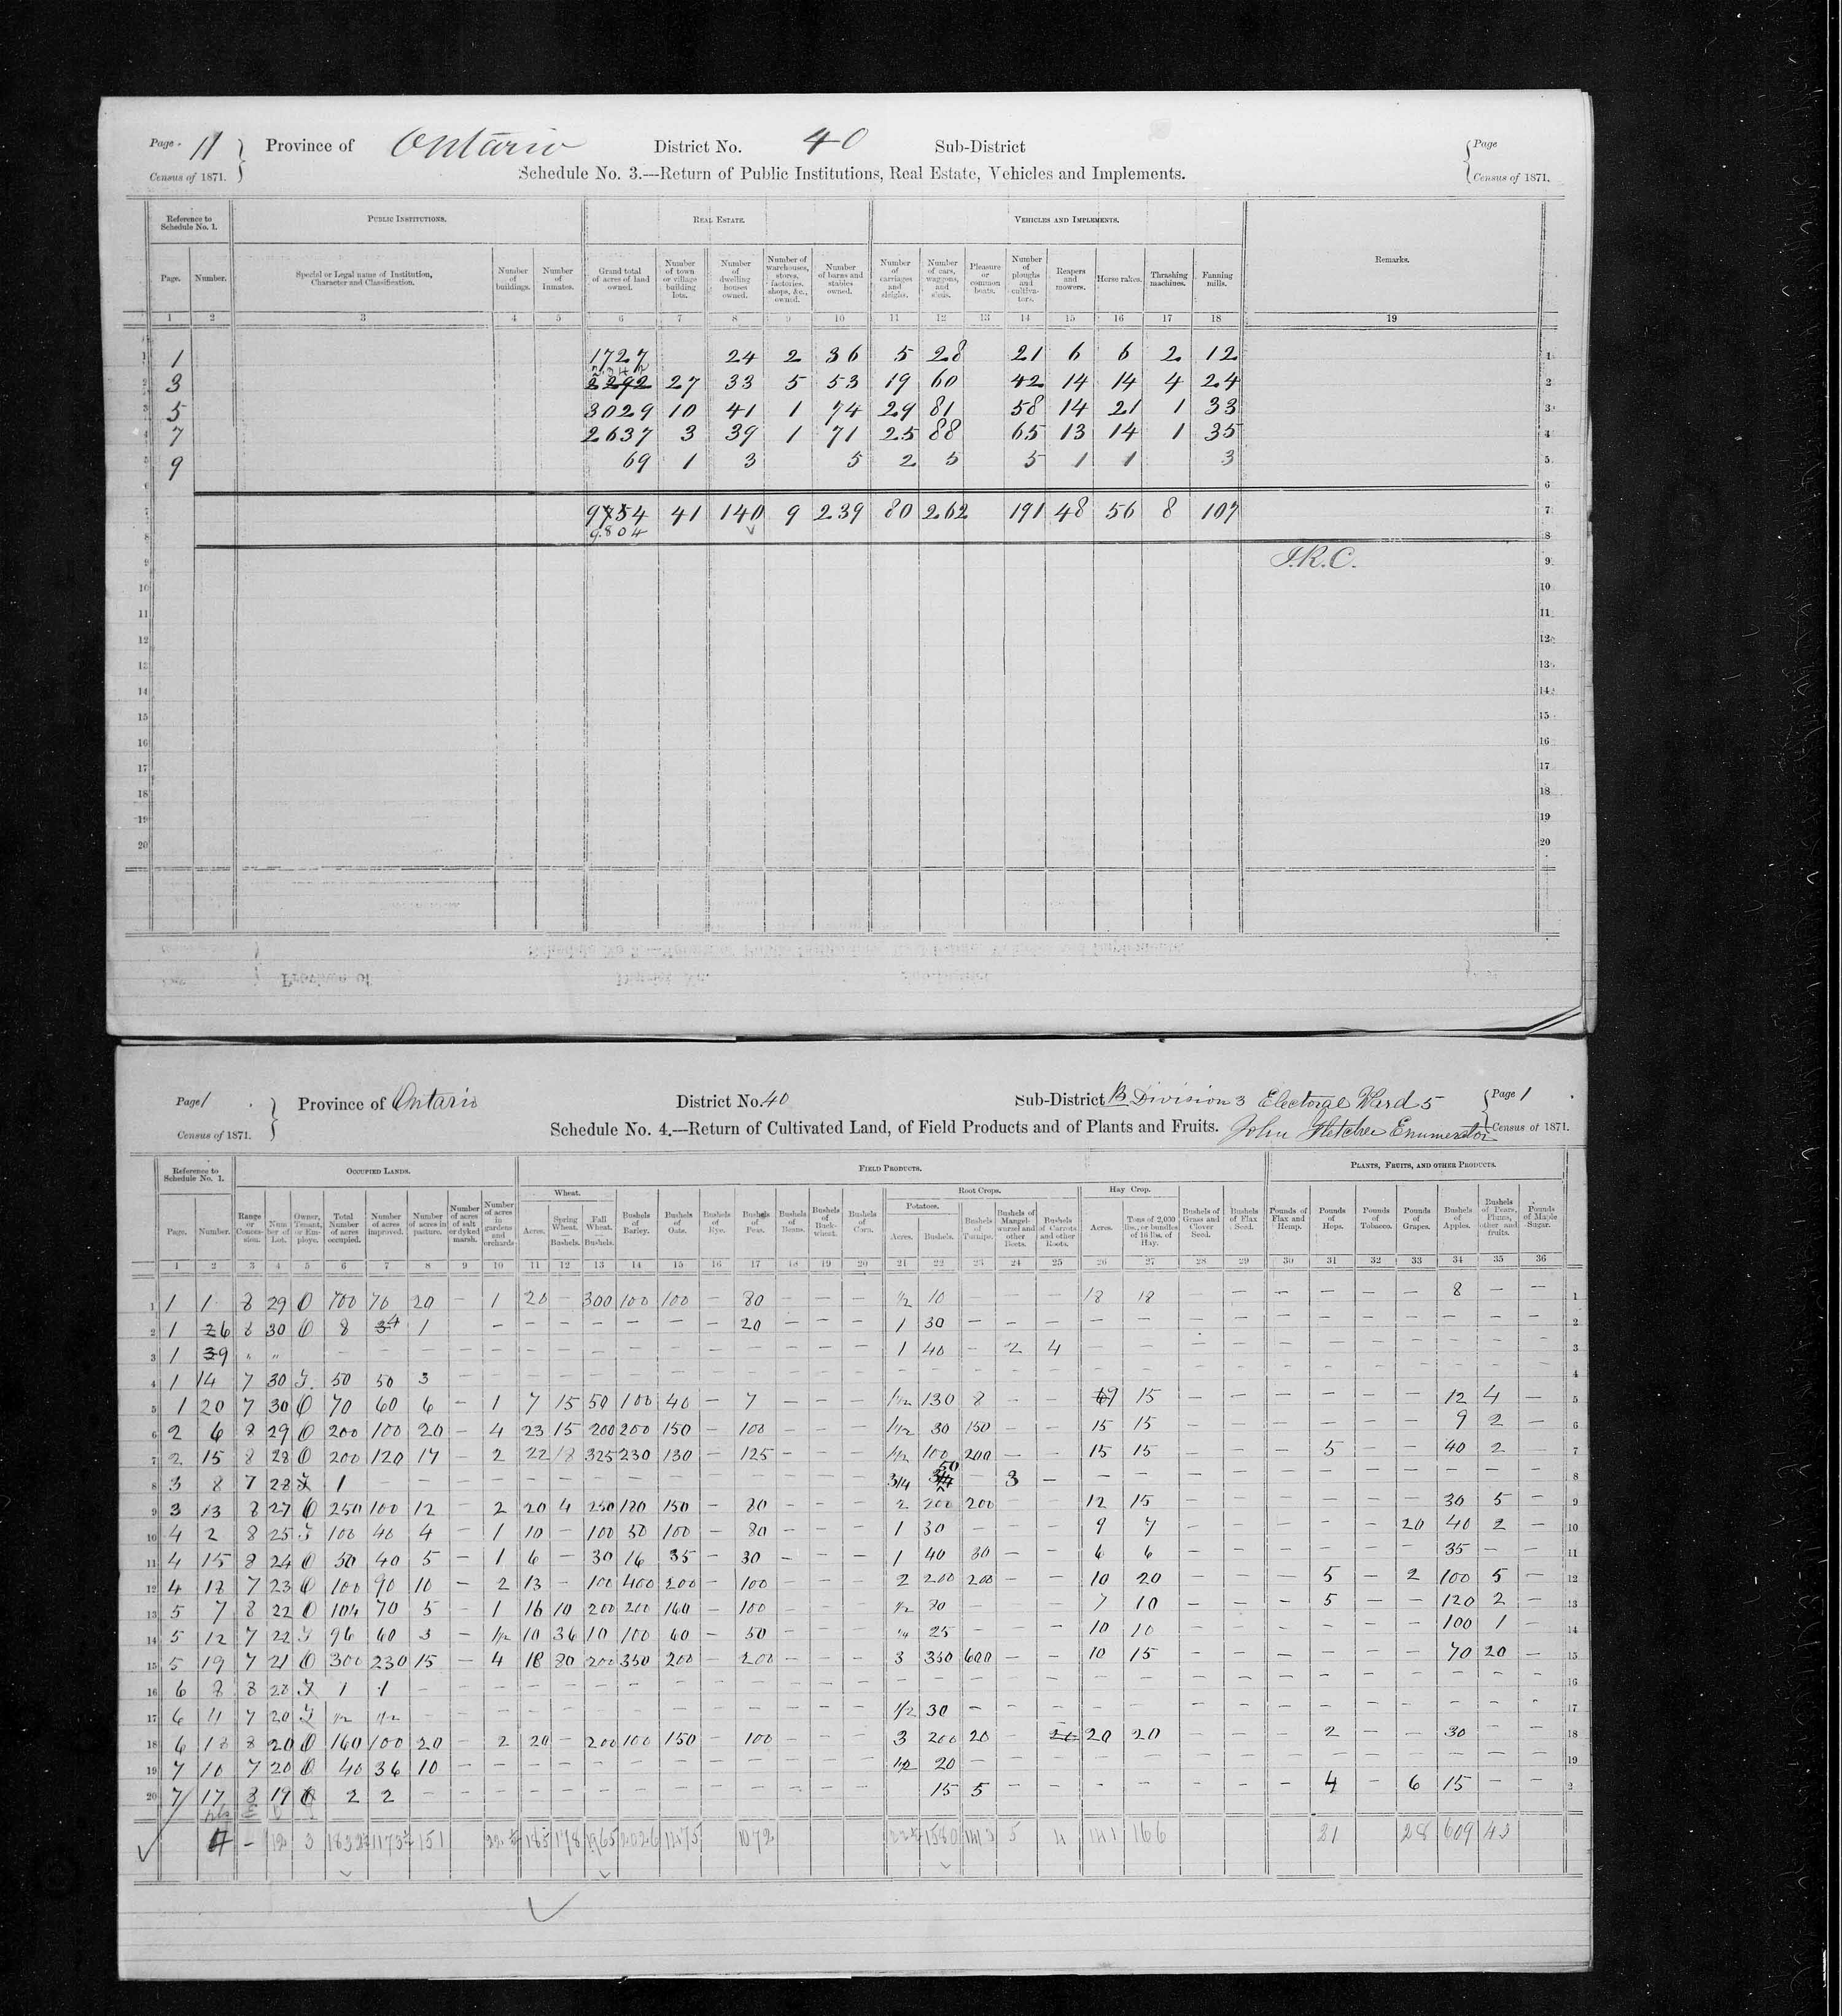 Title: Census of Canada, 1871 - Mikan Number: 142105 - Microform: c-9959